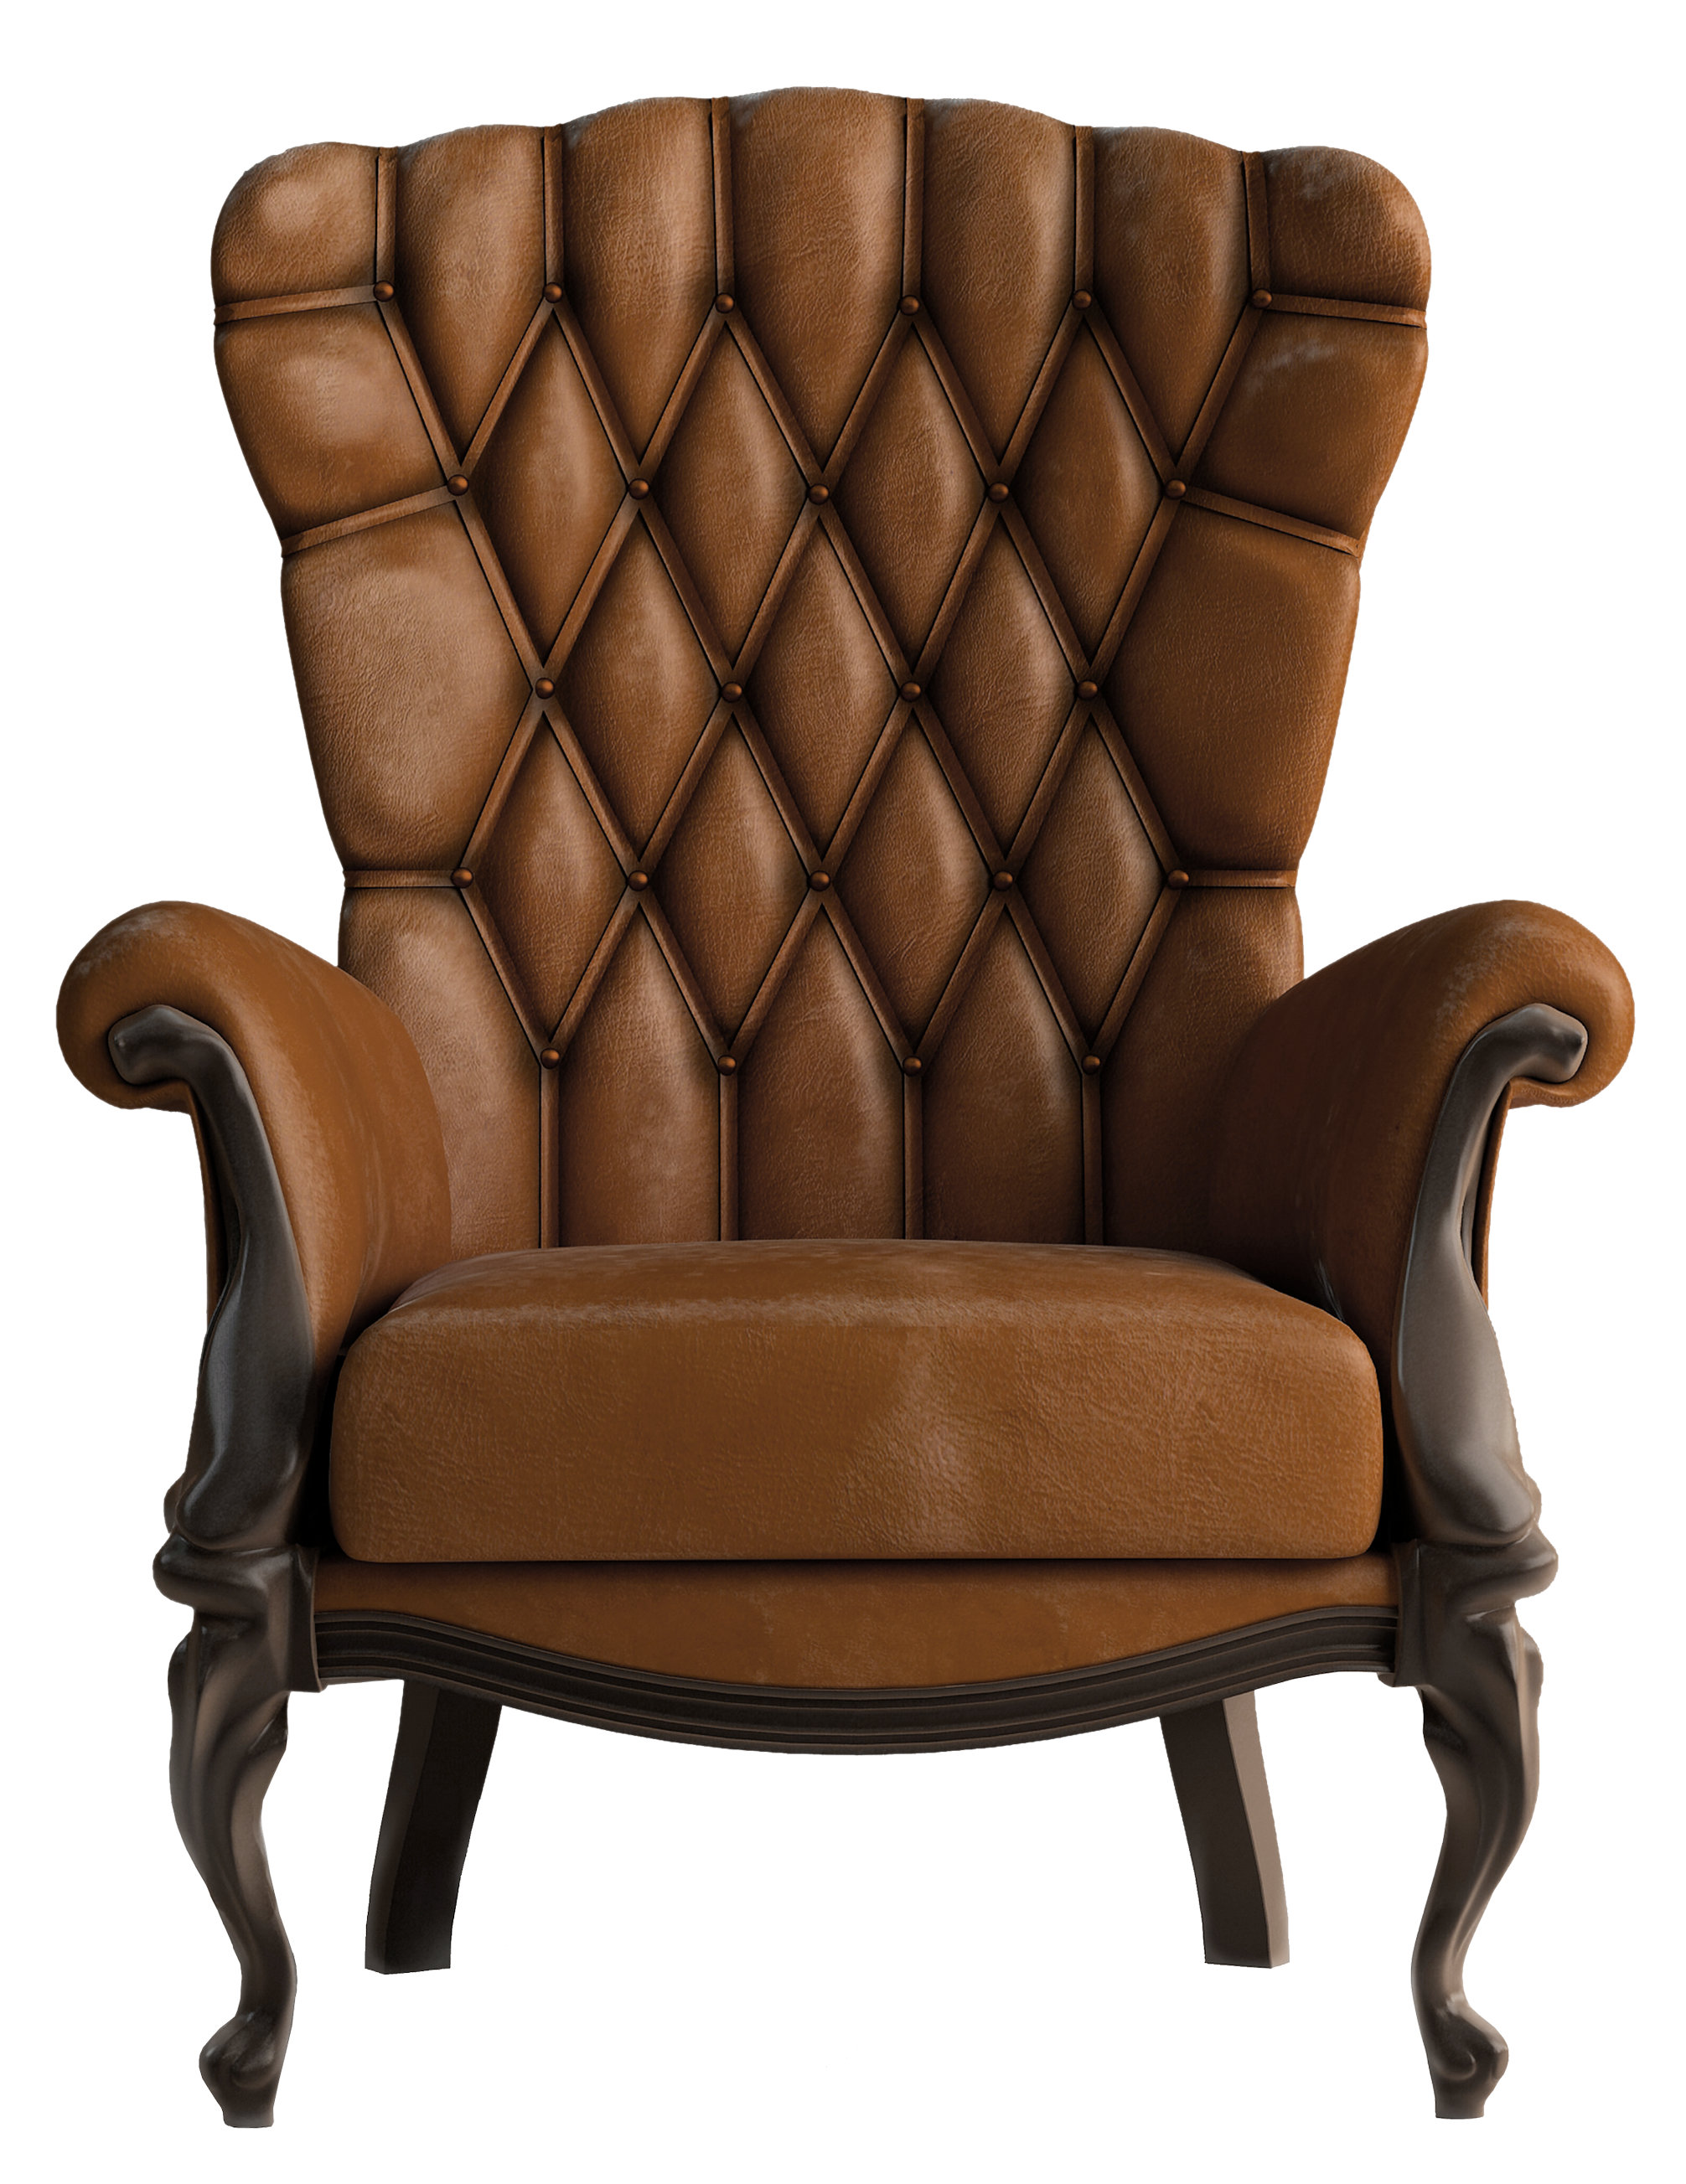 Chair High-Quality PNG - Armchair HD PNG